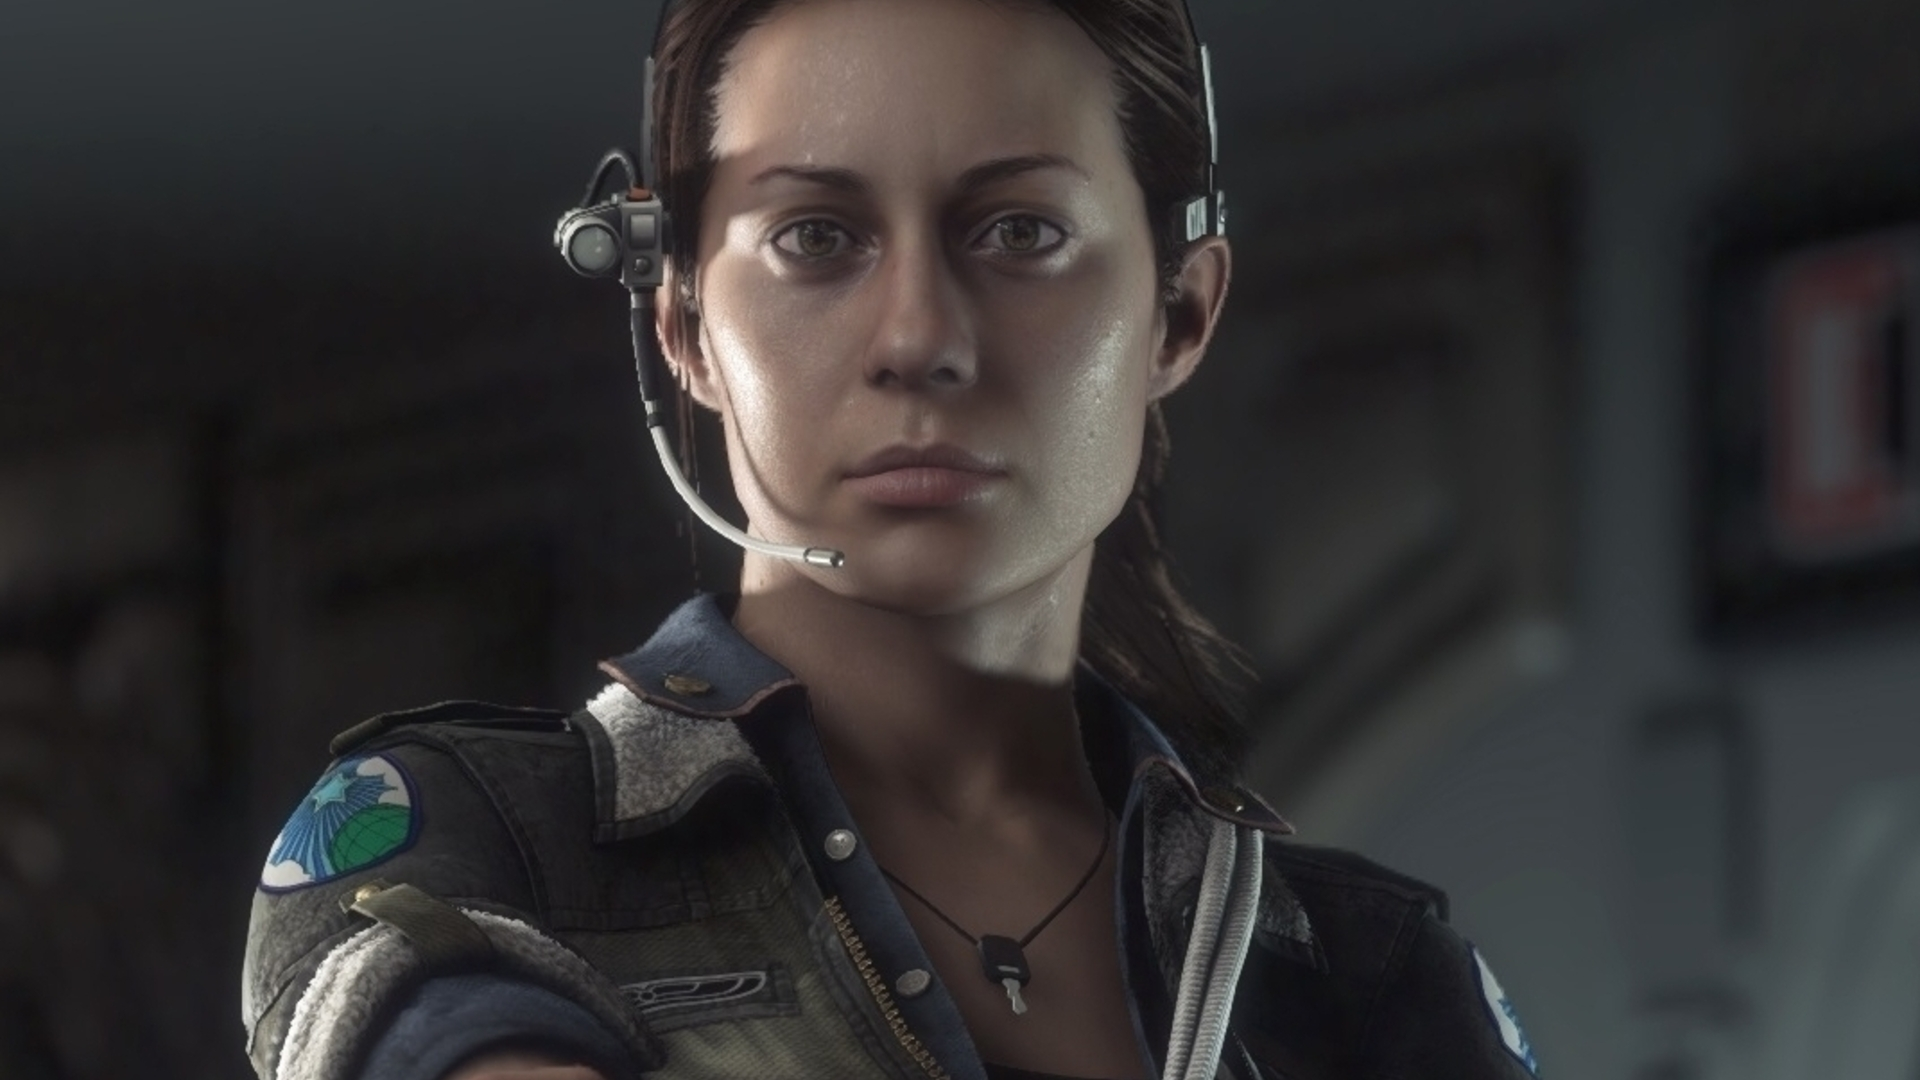 Alien Isolation release date announced